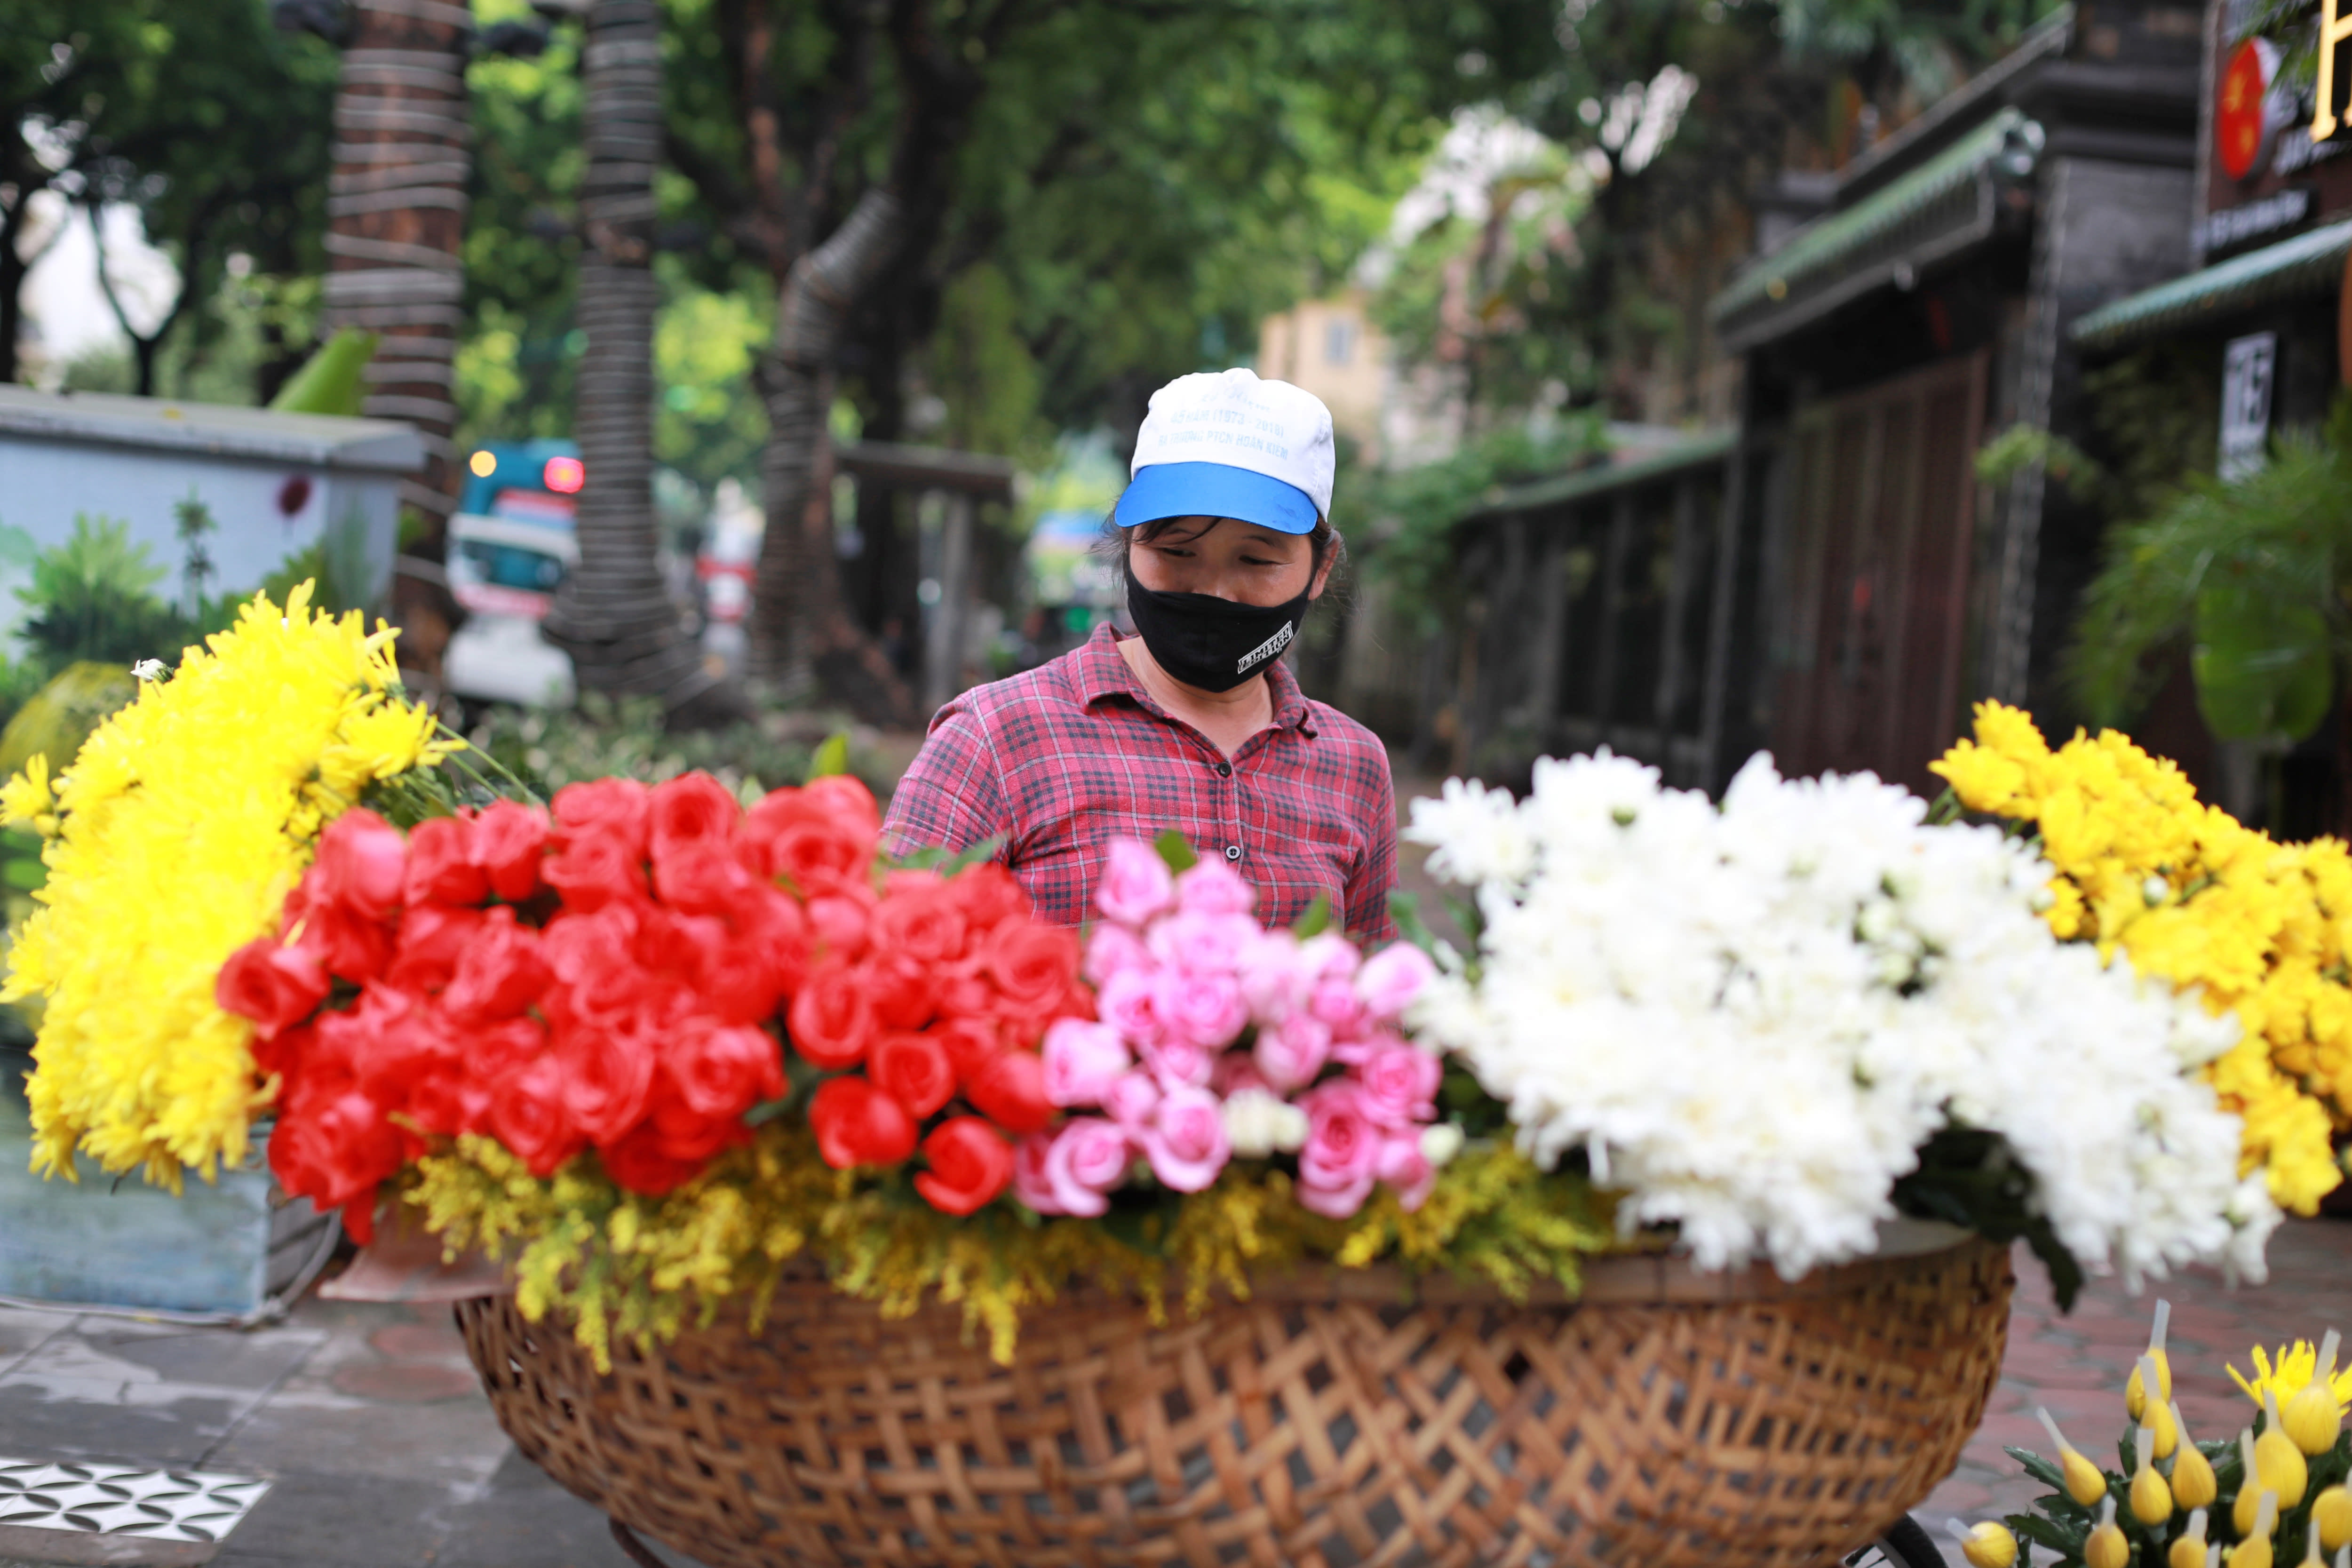 Vietnam's new Covid-19 outbreak started in early July, says govt